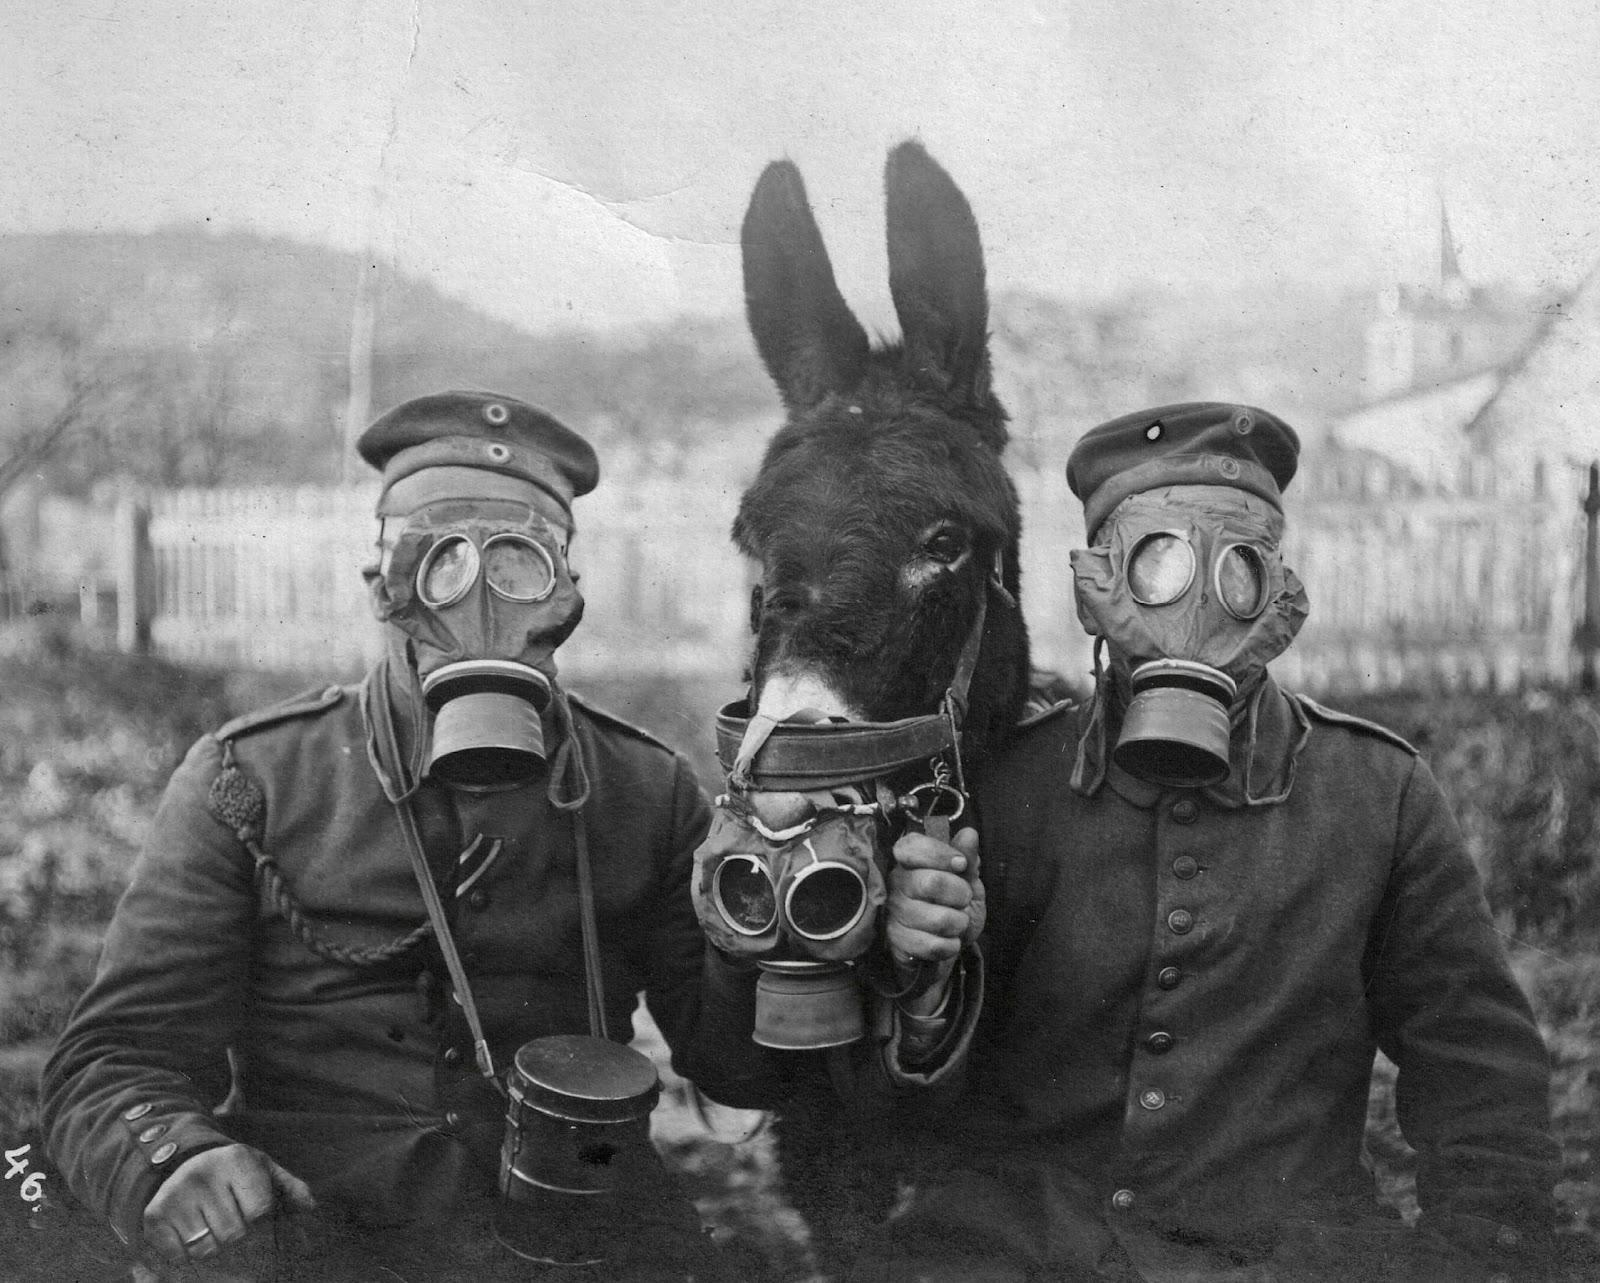 Extraordinary images from the Great War.